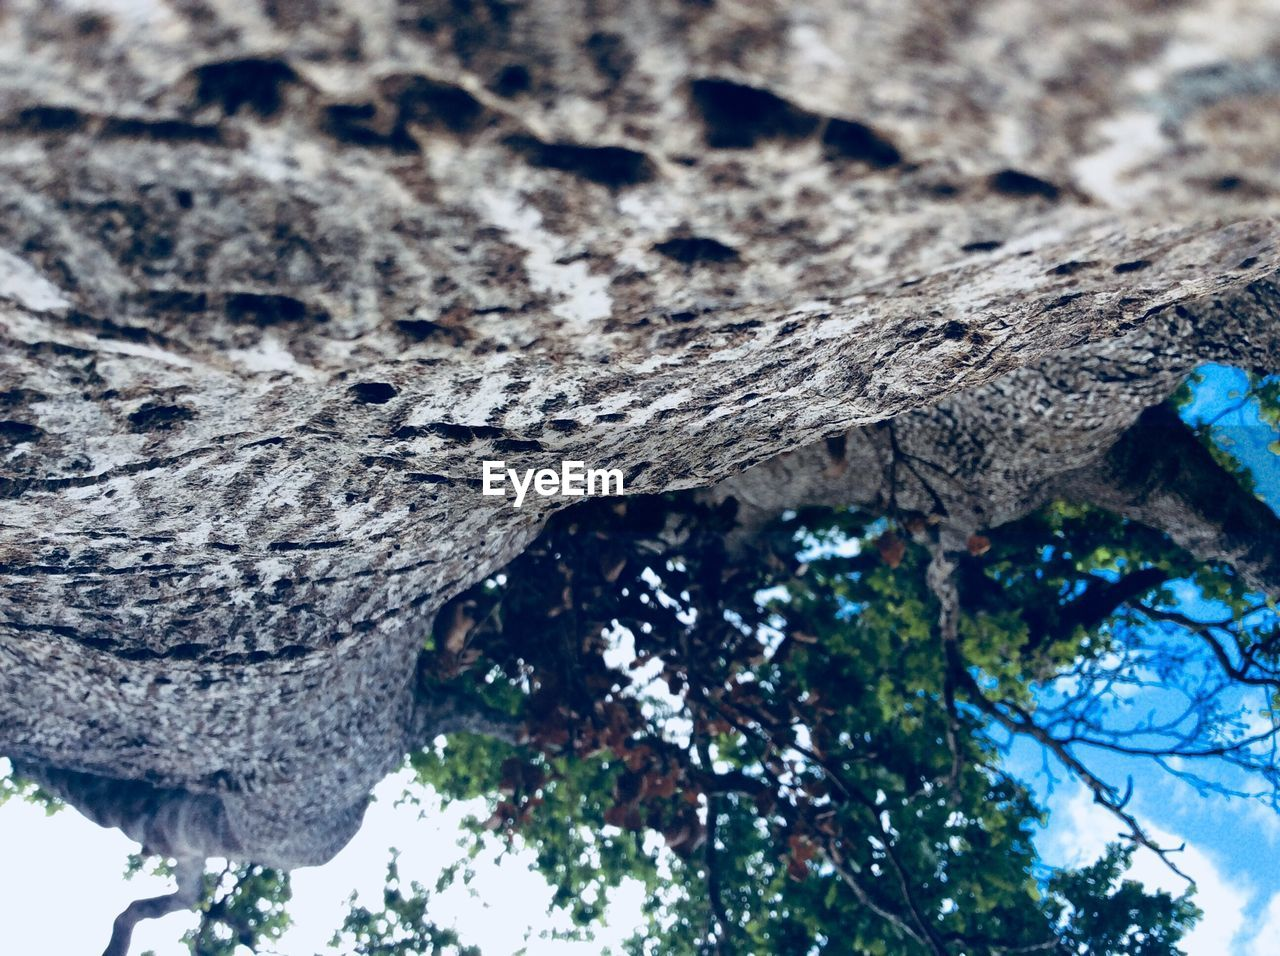 tree, plant, trunk, tree trunk, textured, nature, day, no people, low angle view, focus on foreground, rough, close-up, branch, growth, wood - material, plant bark, outdoors, pattern, bark, selective focus, lichen